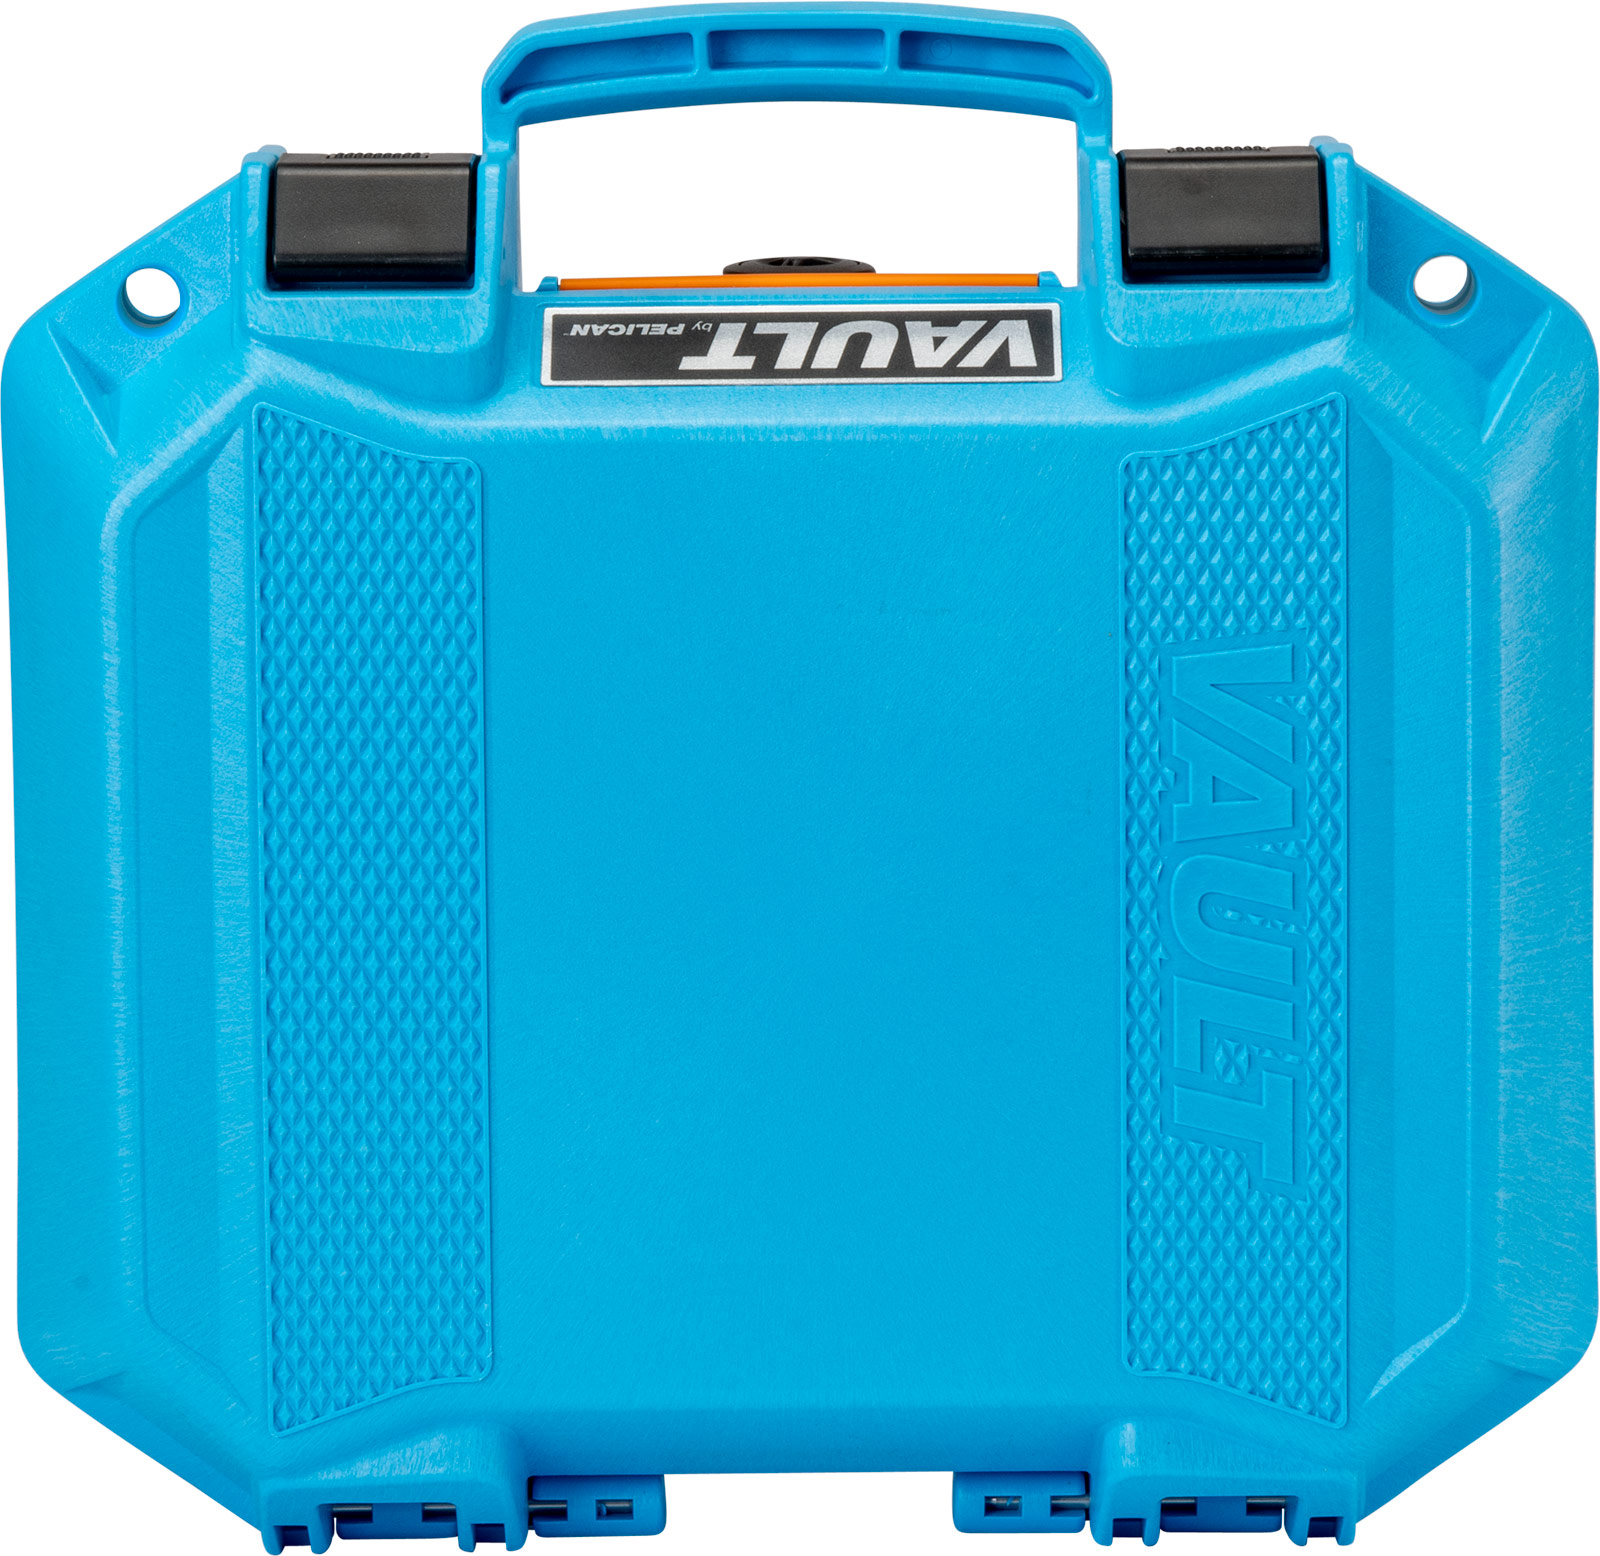 pelican blue case vualt series cases v100c